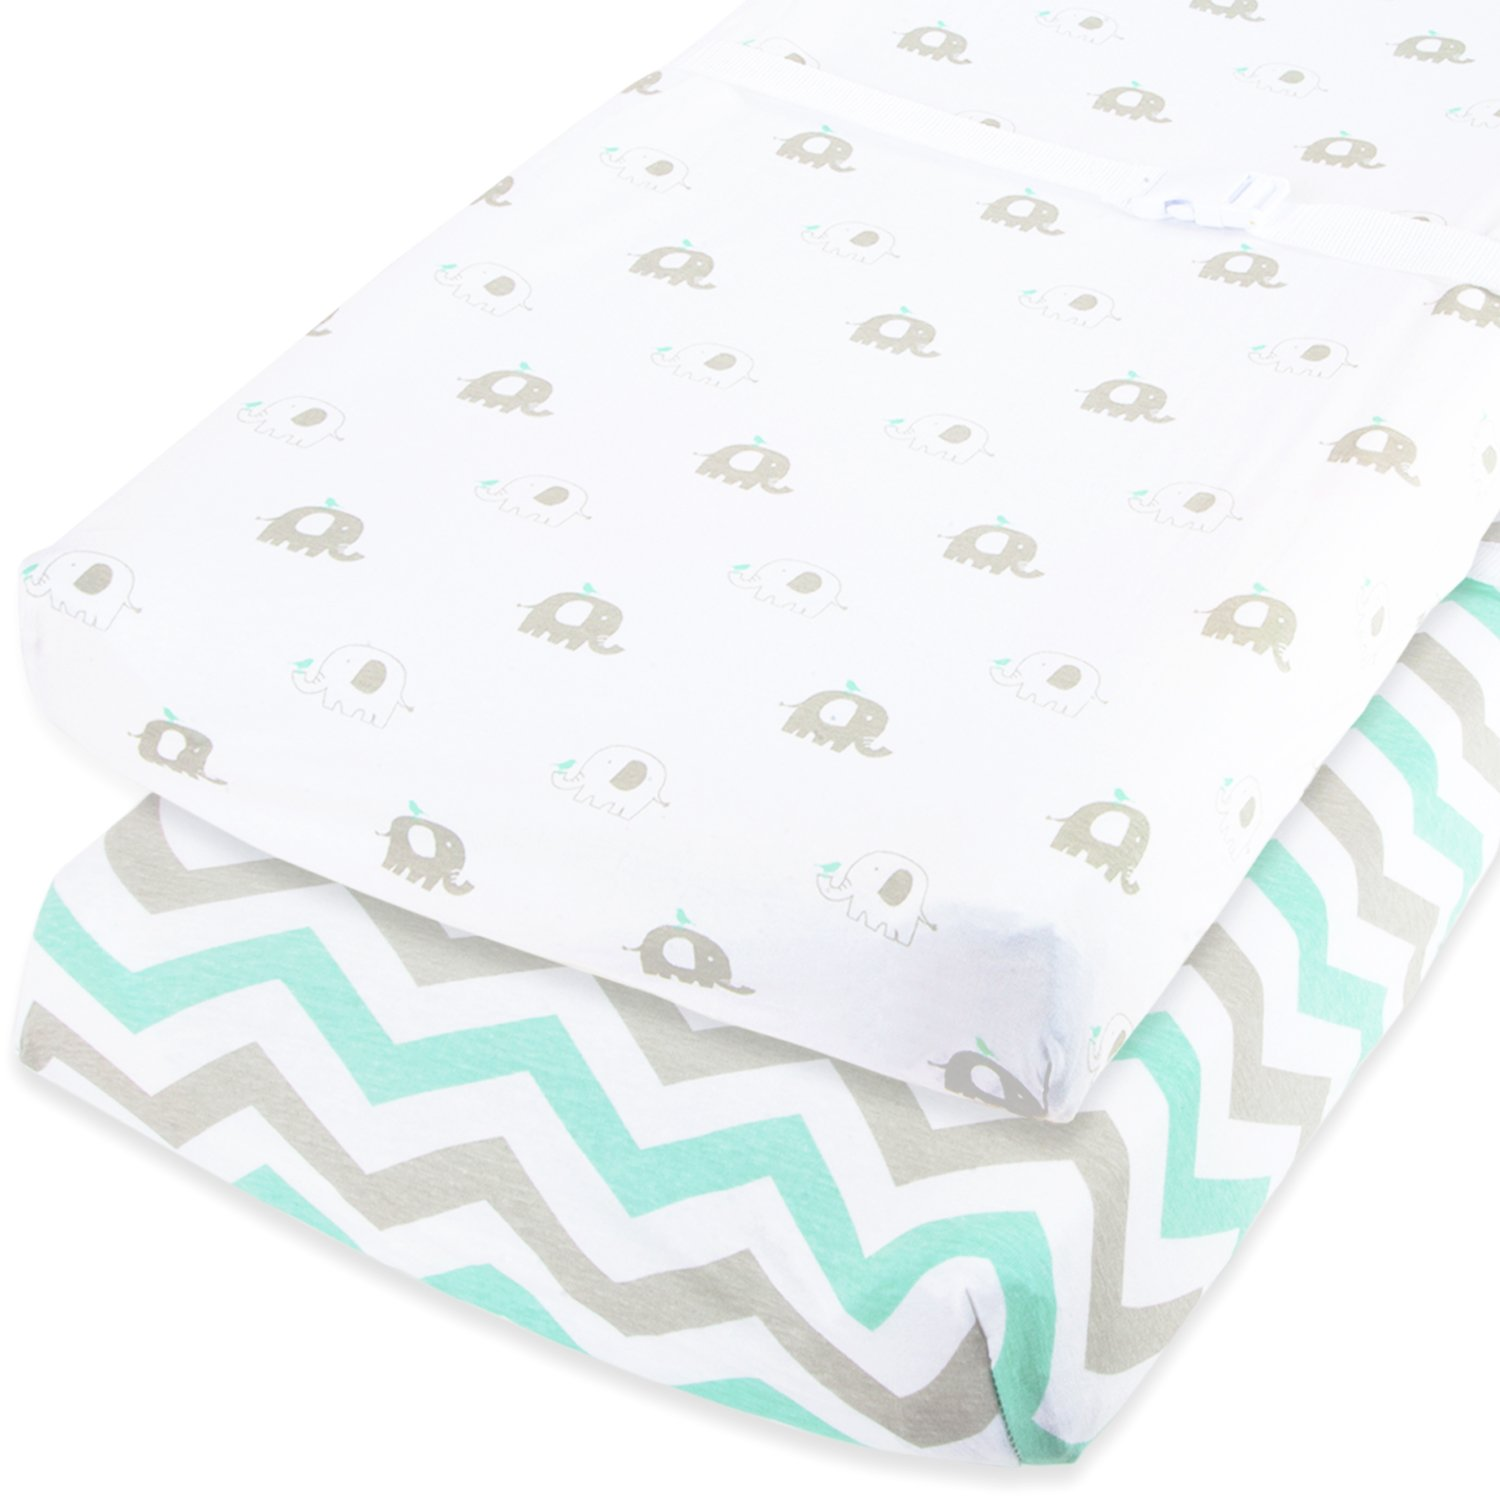 Cuddly Cubs Baby Changing Pad Covers Boy or Girl - 2 Pack Changing Table Cover - Compatible With Summer Infant Changing Pad - Elephant Changing Pad Cover - Green, Grey, White by Cuddly Cubs